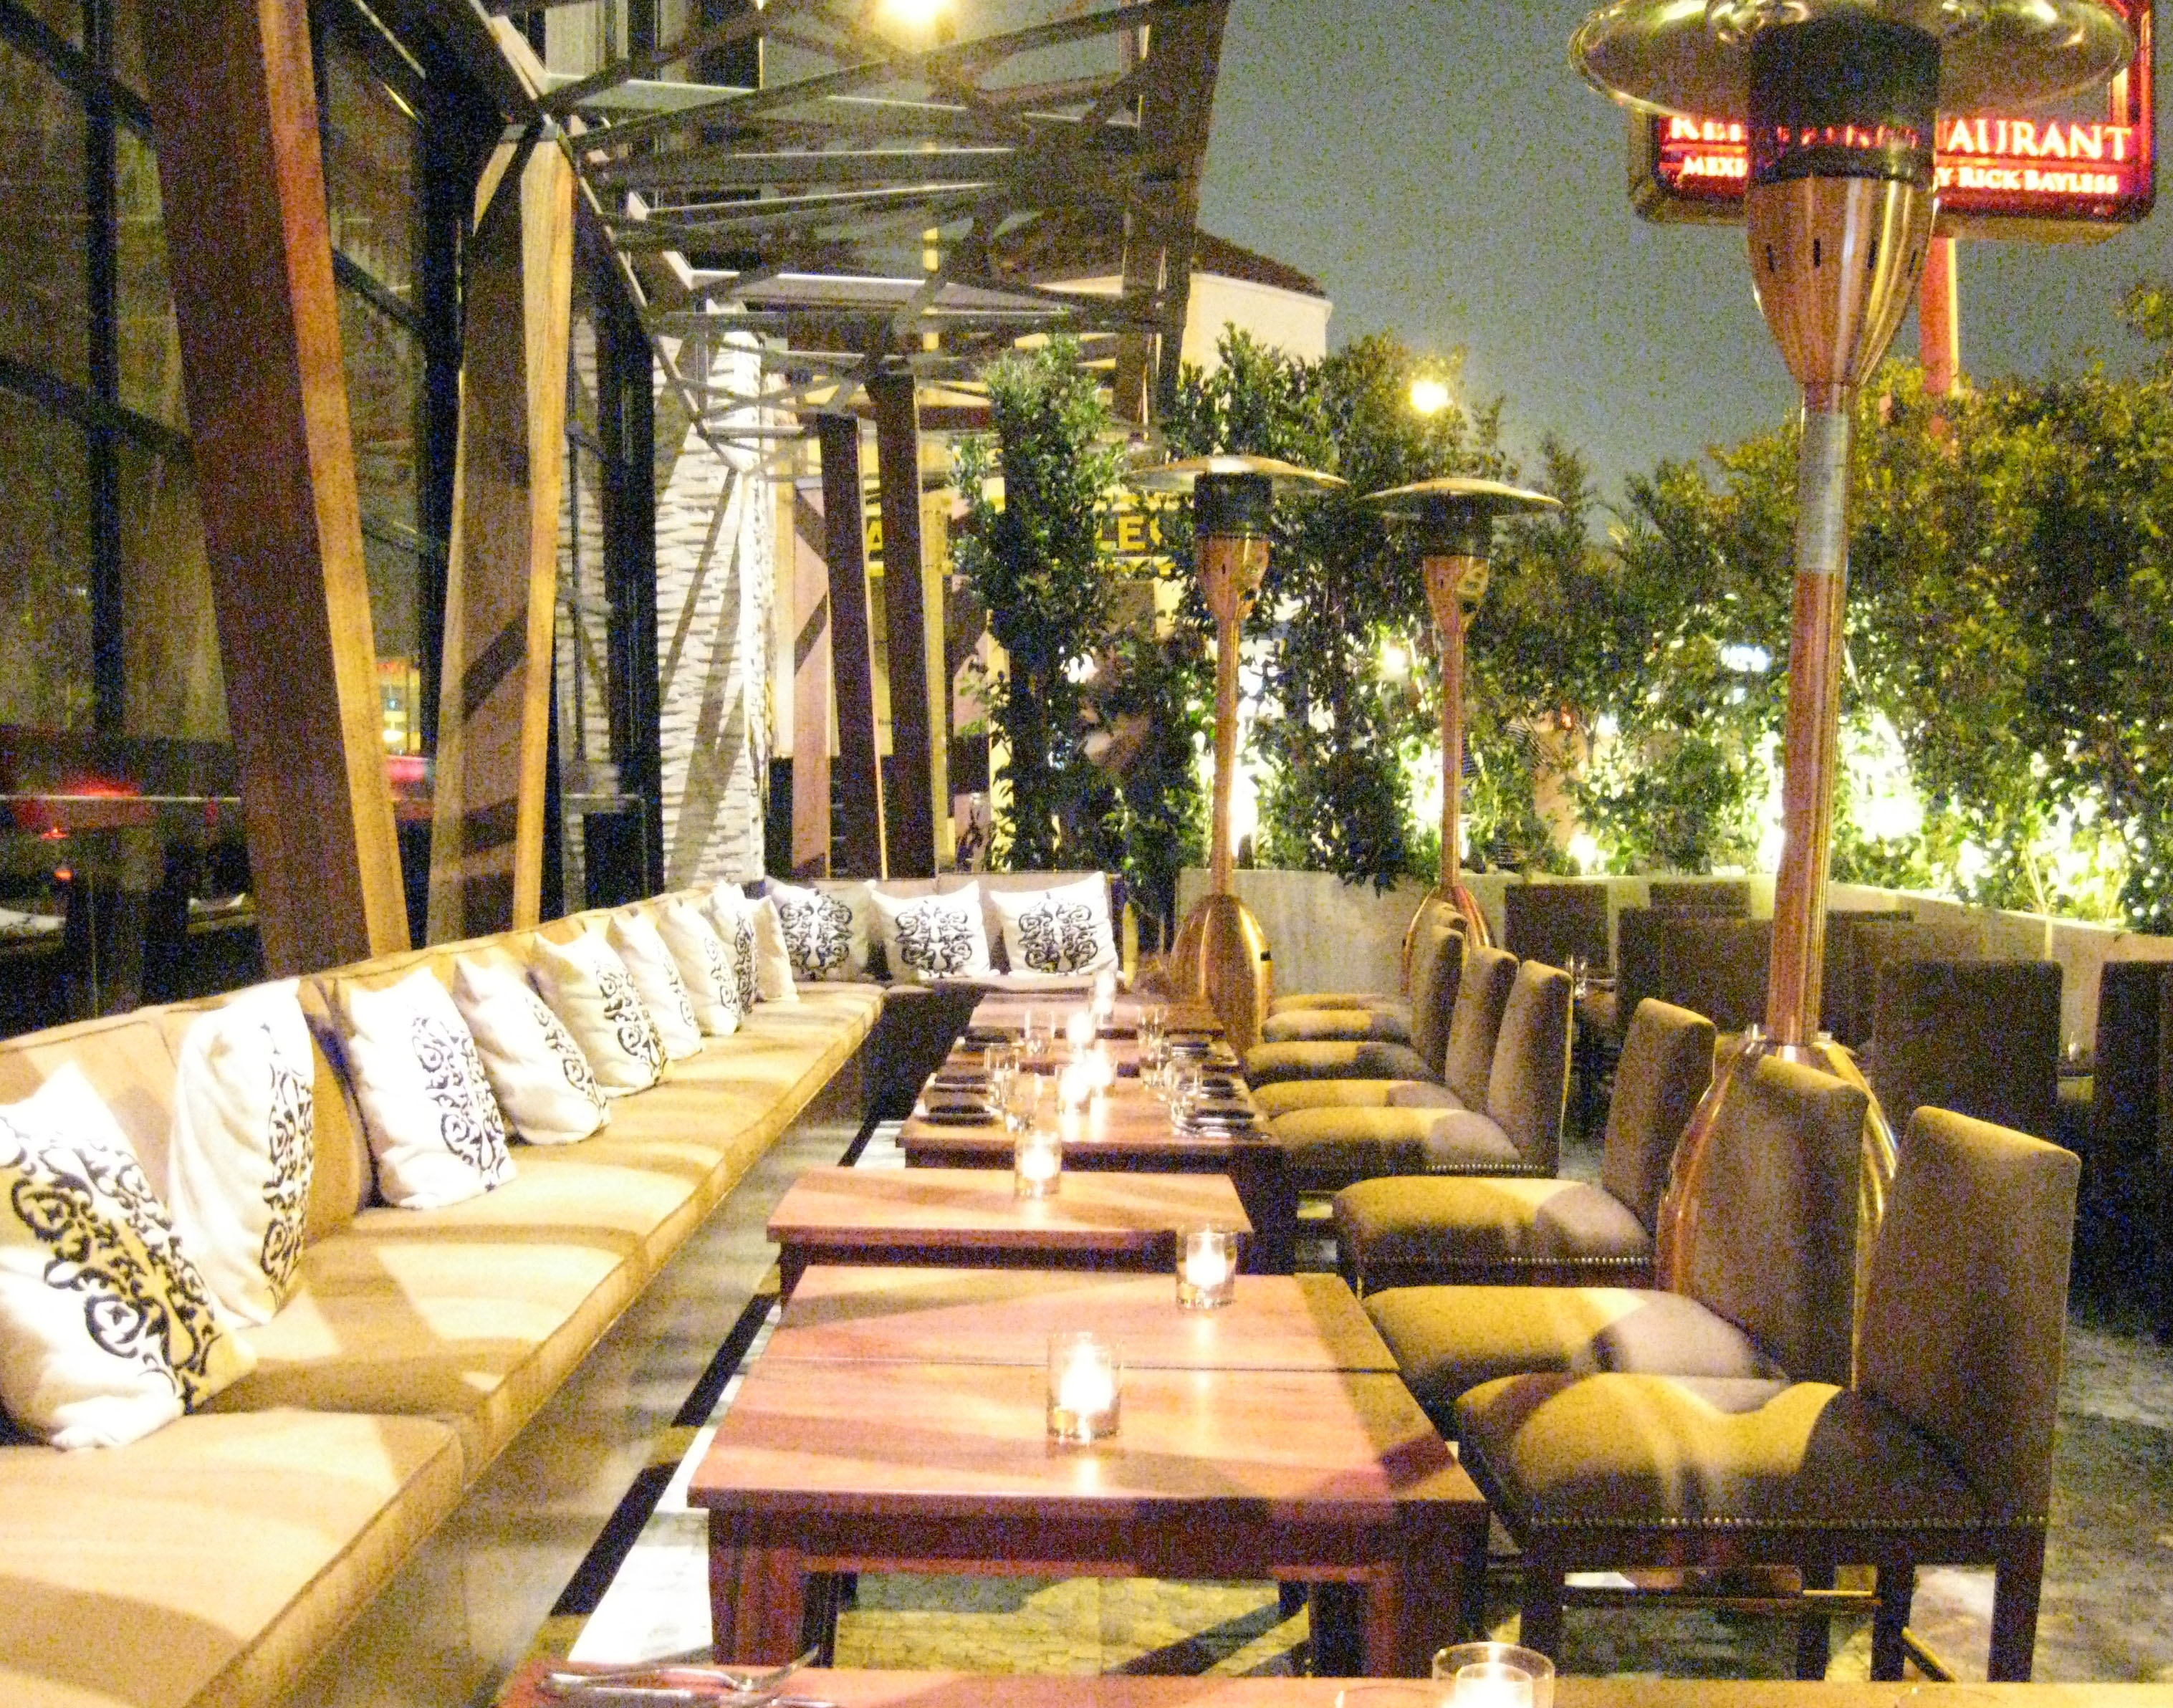 Http Www Gayot Com Blog Red O Restaurant Chef Rick Bayless Los Angeles Mexican Food Tequila Outdoor Patio